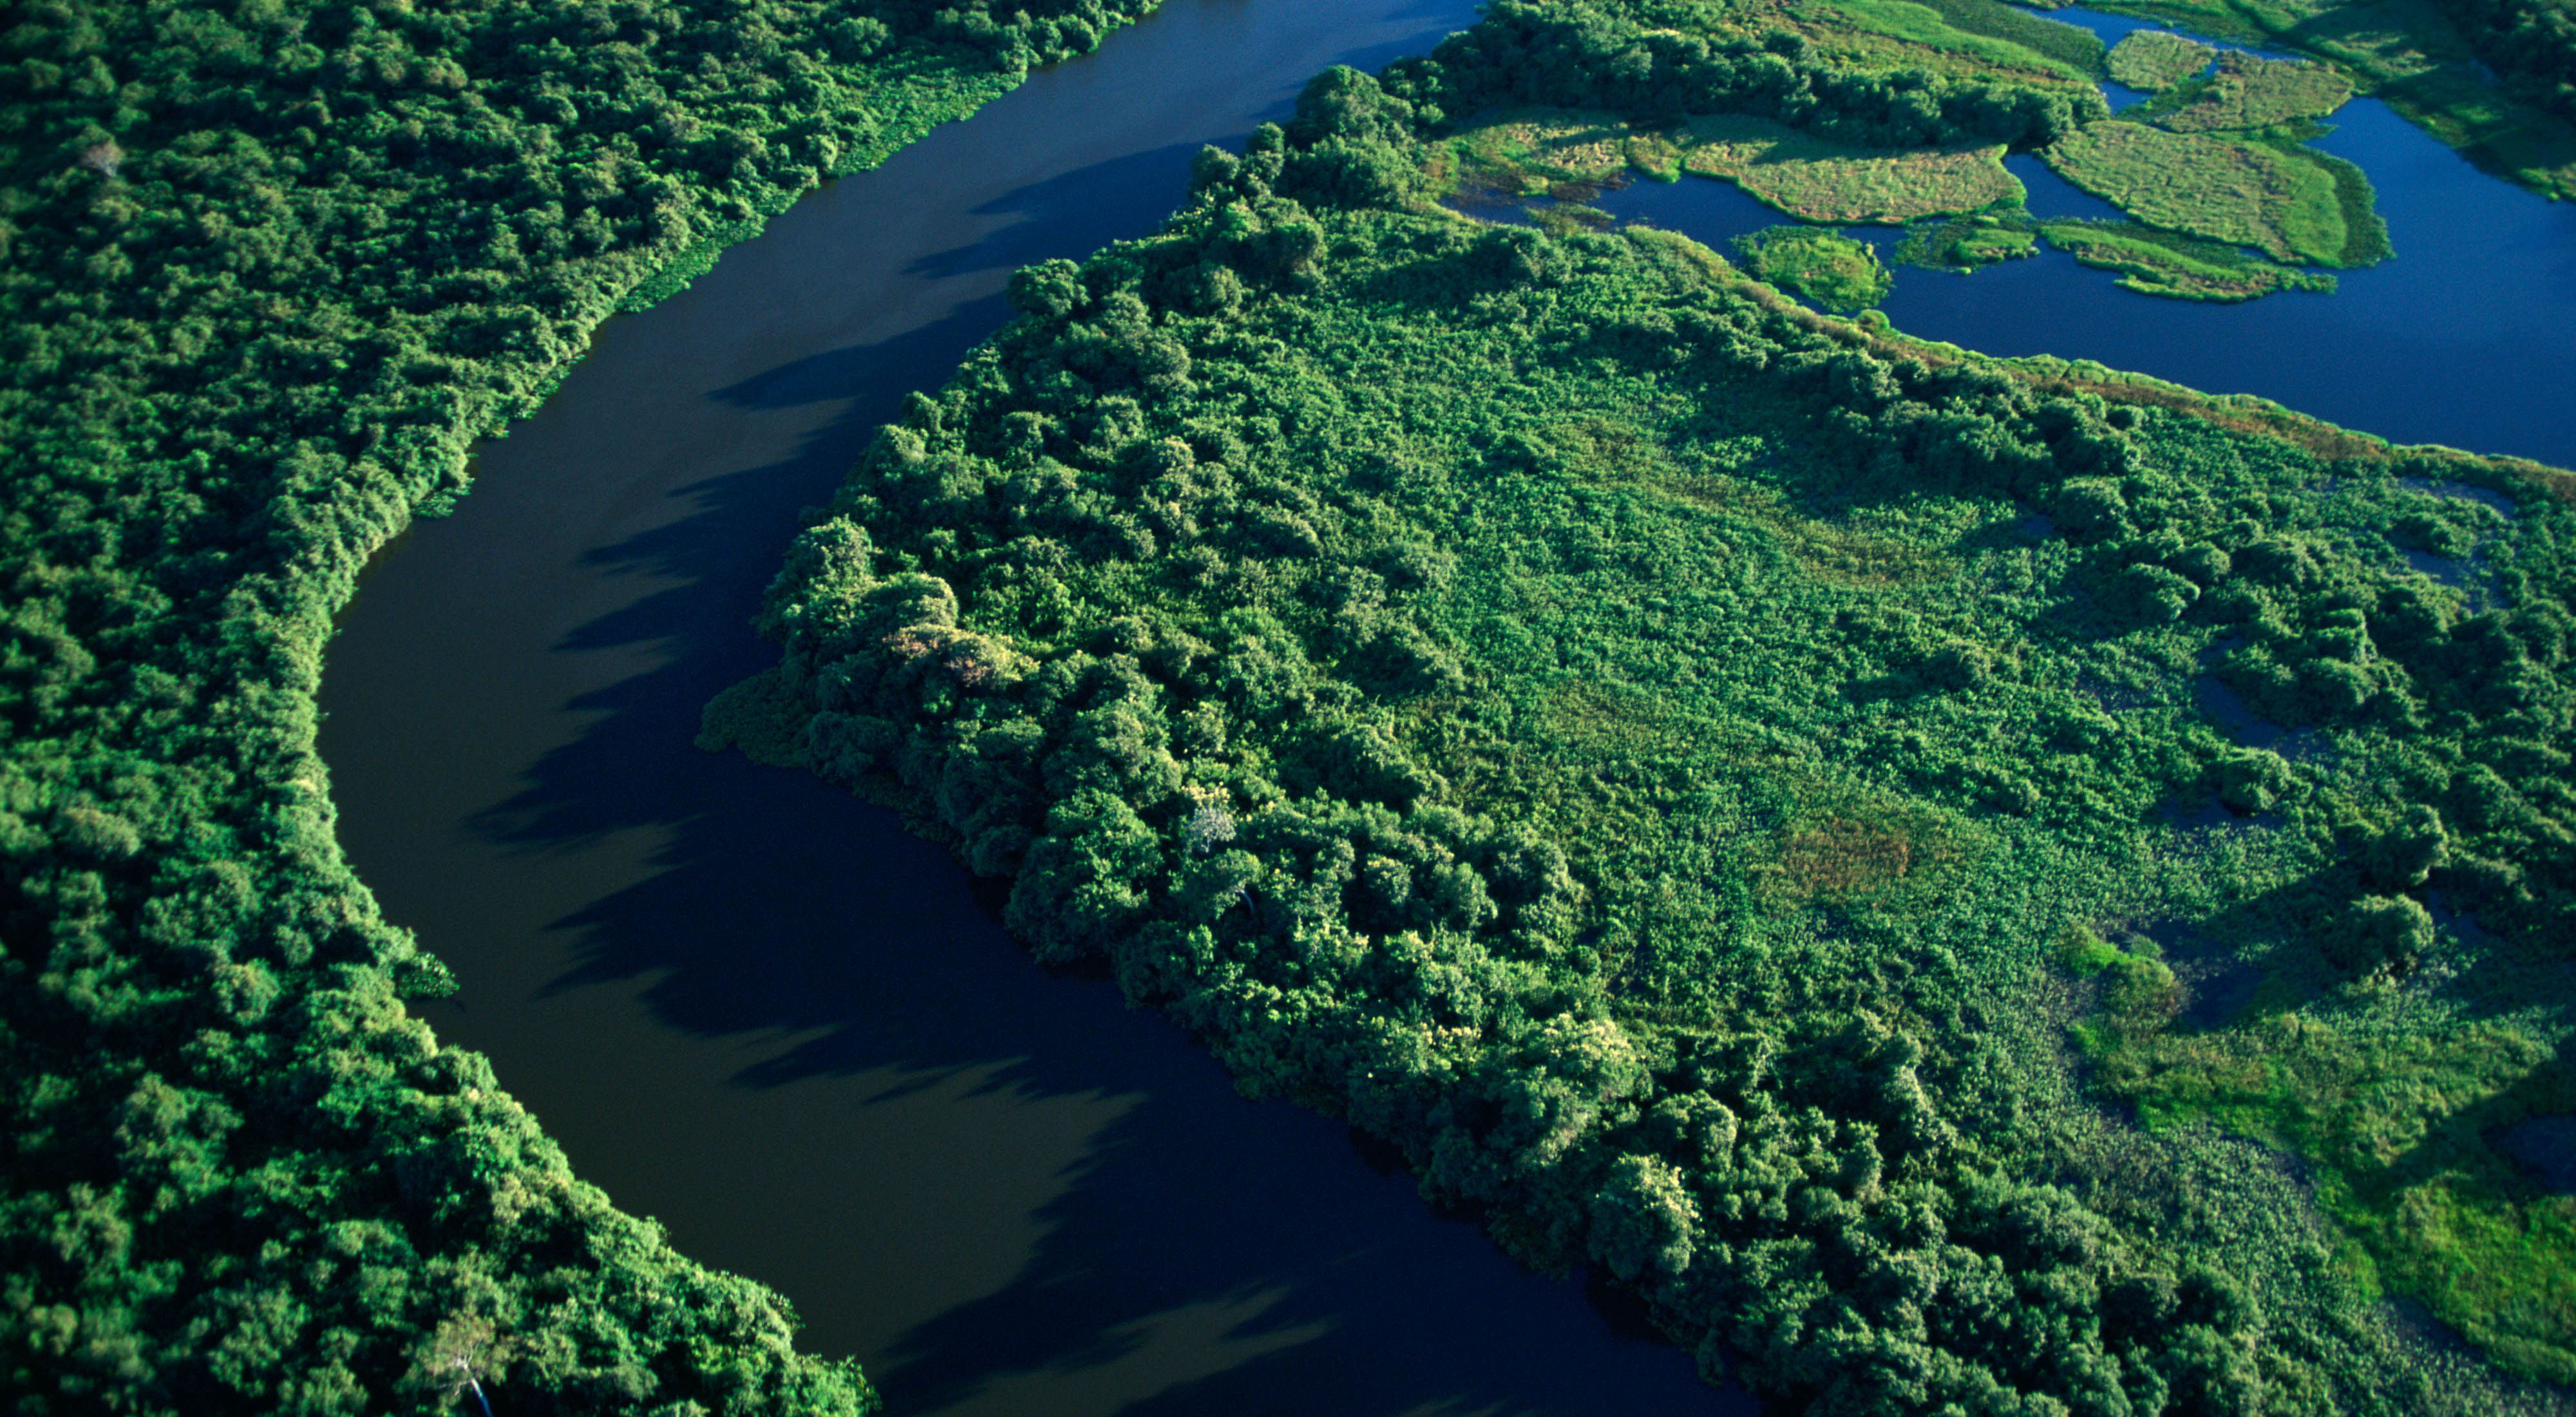 Aerial view of Cuiab River crossing the Pantanal National Park in Brazil.